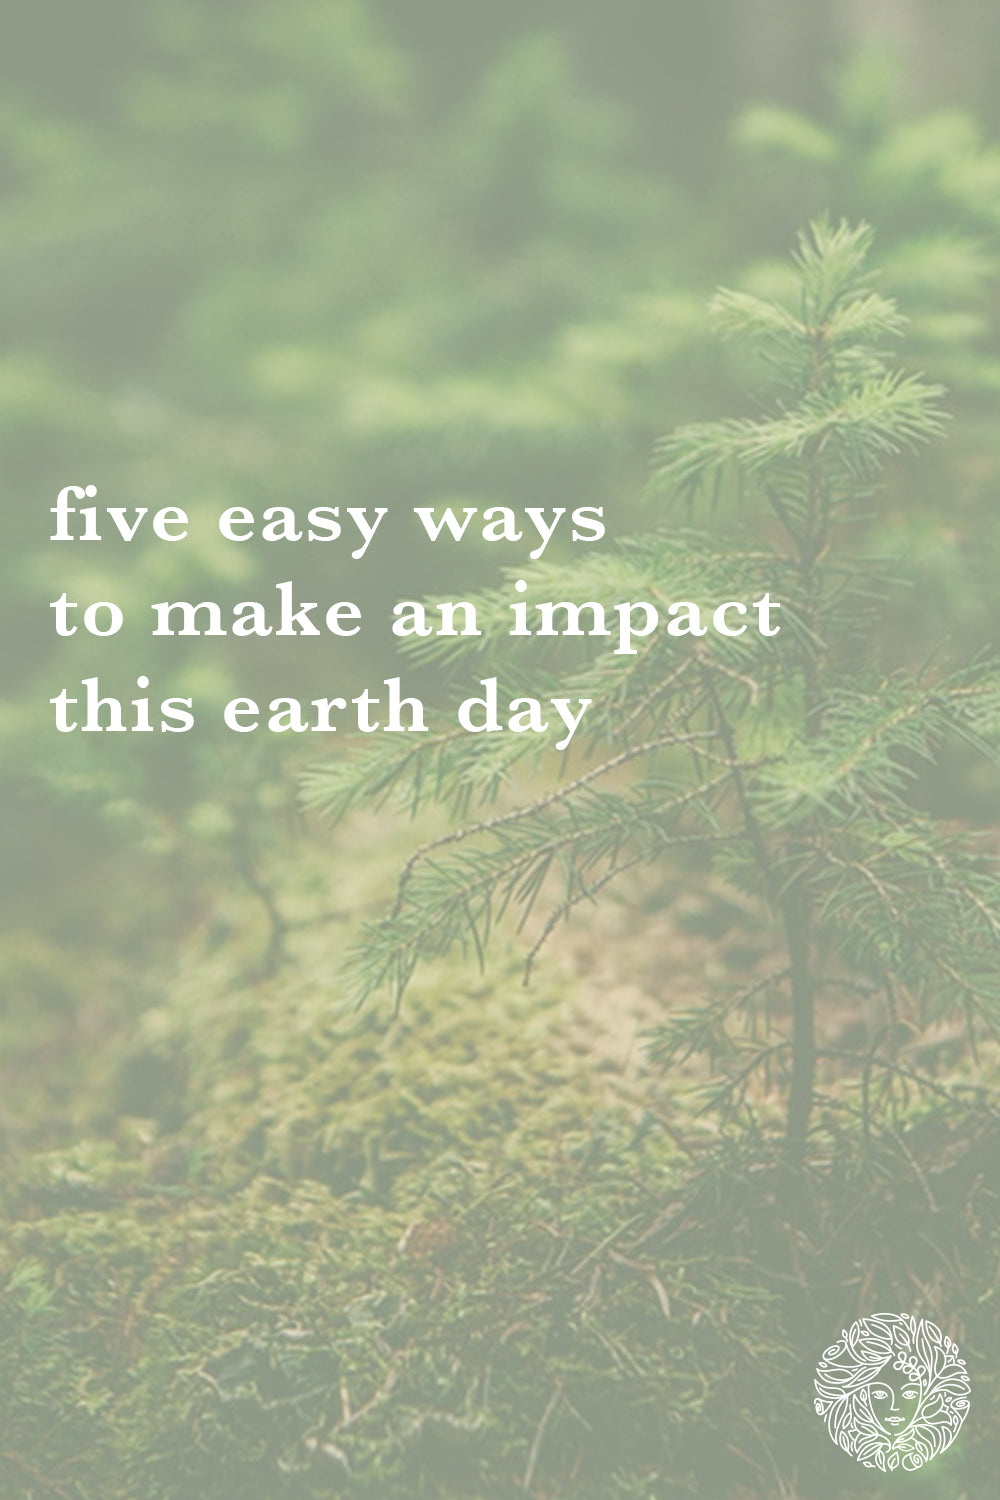 5 Easy Ways to Make an Impact this Earth Day